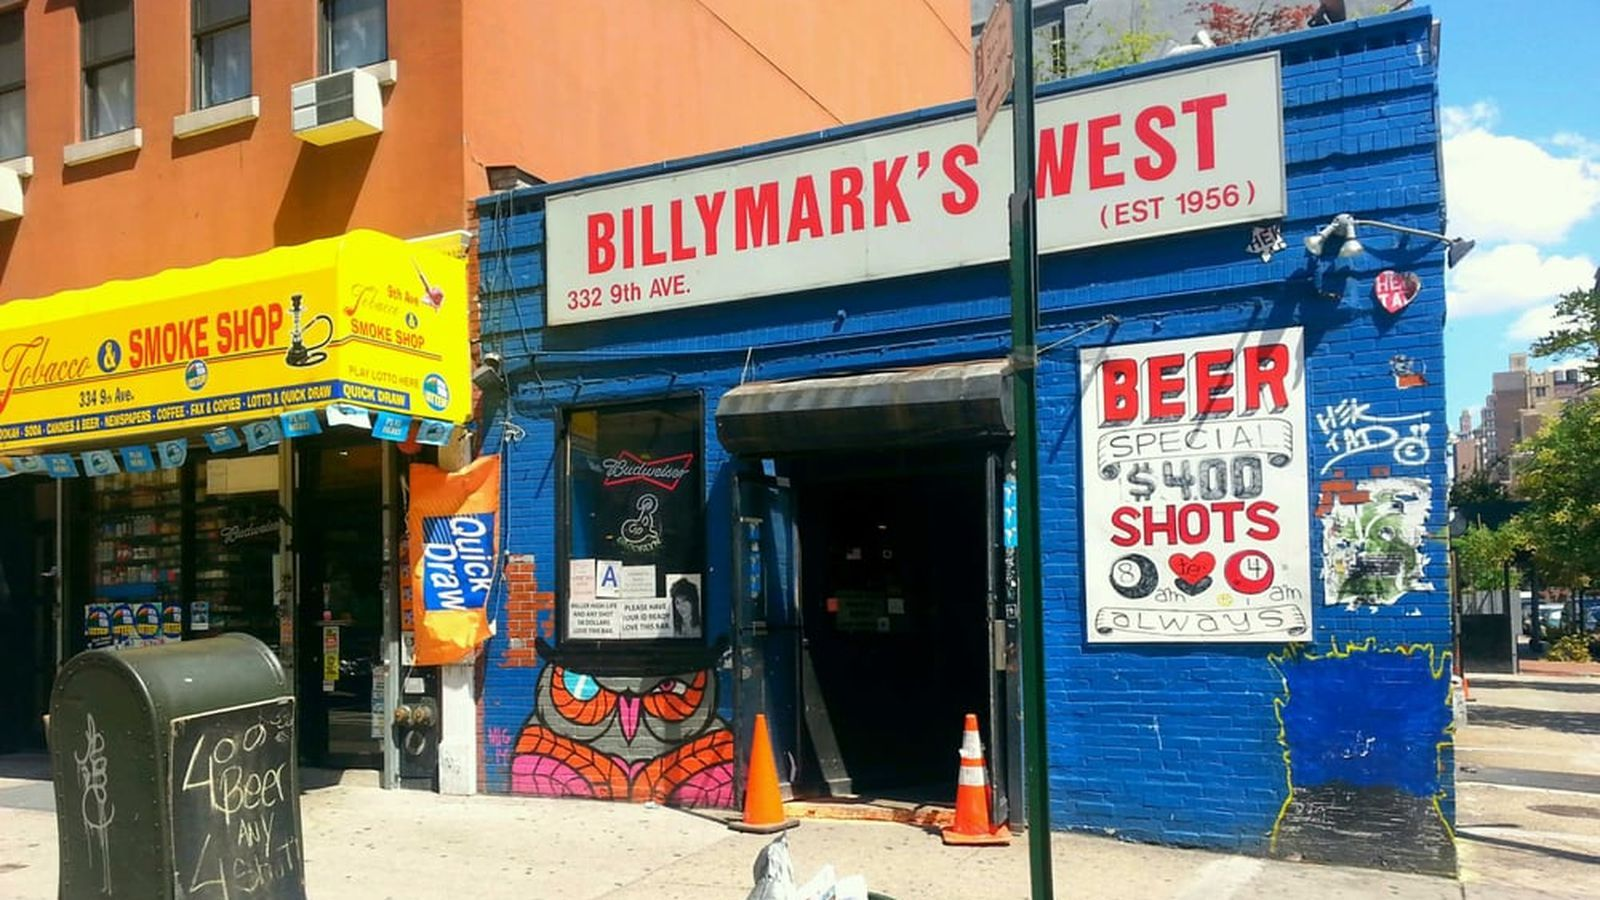 The 31 Best Dive Bars in NYC Dive bar, Nyc, Beer specials